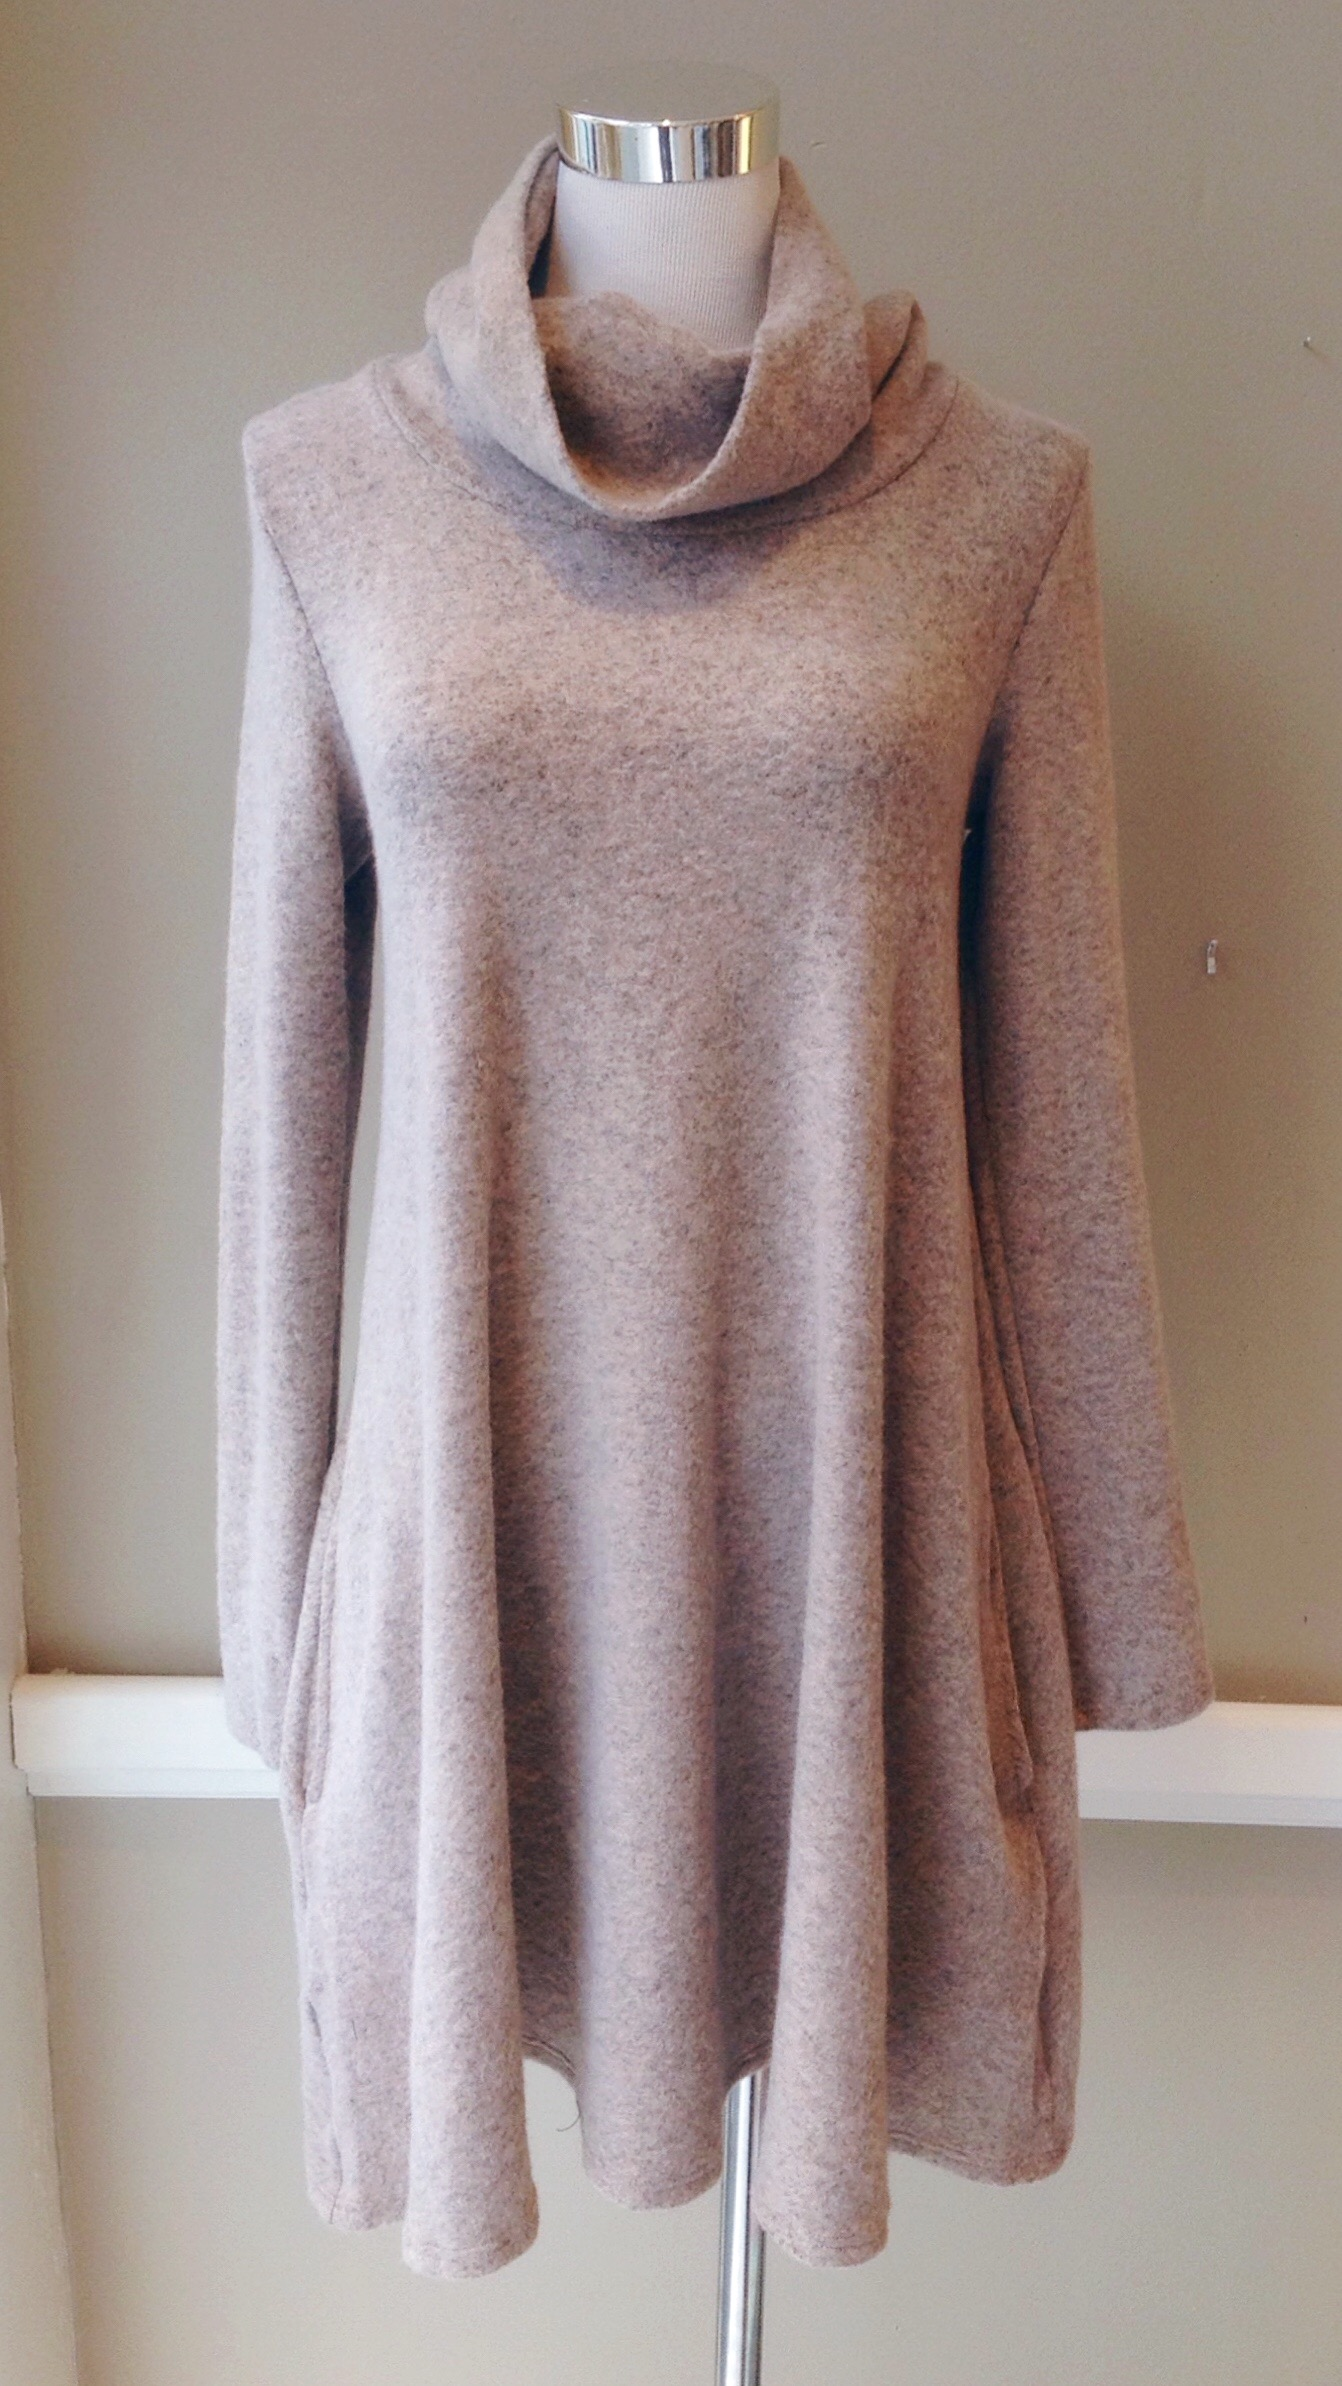 Fleecy knit A-line dress with cowl neck and side seam pockets in taupe, $45